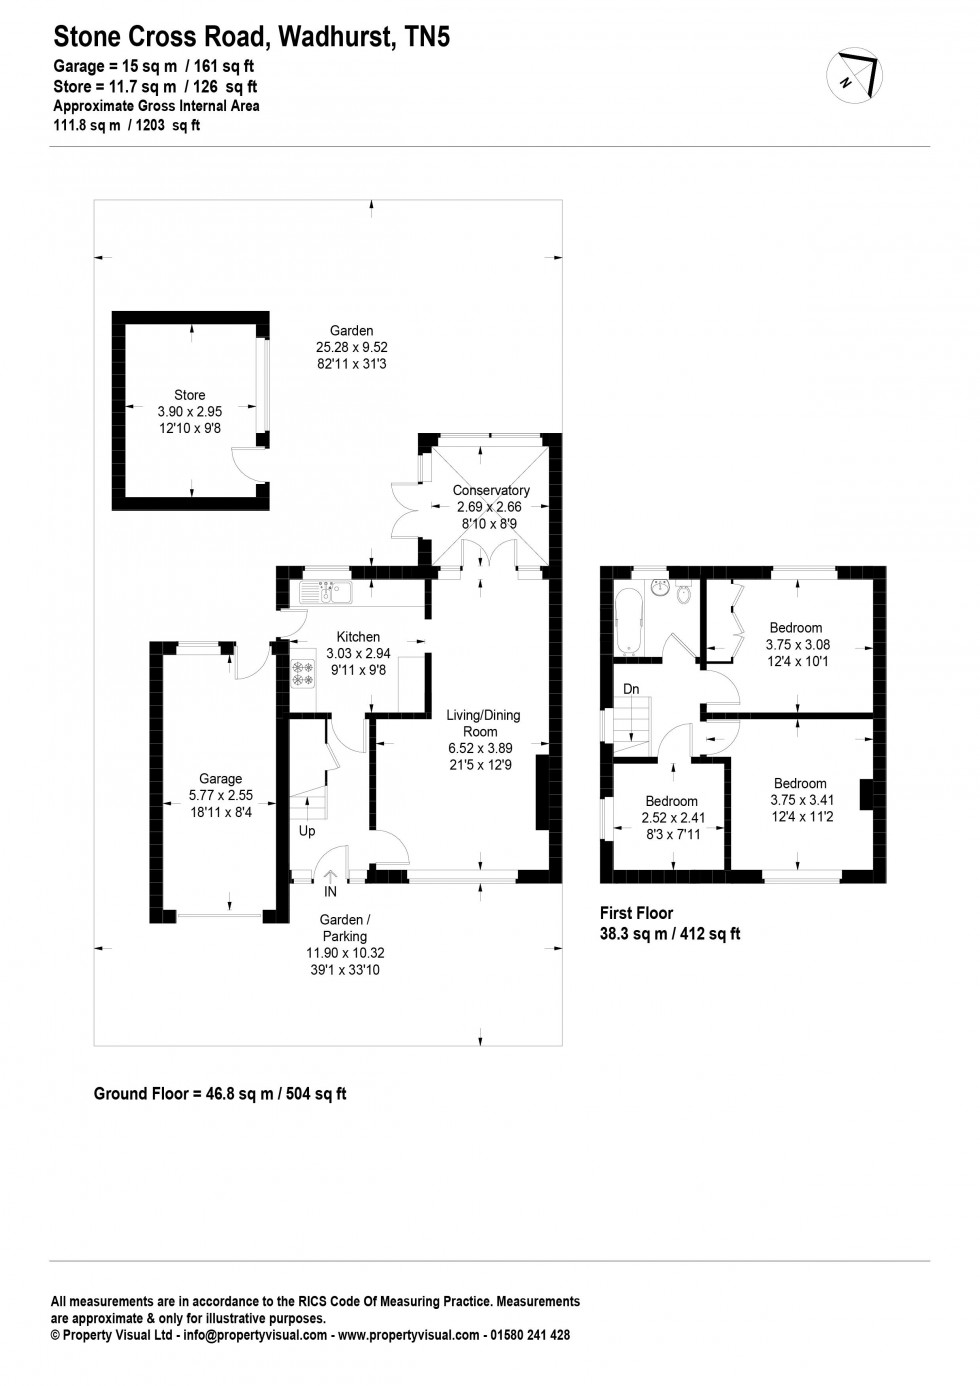 Floorplan for Three Bed Semi Detached House with Scope to Extend stpp on Stone Cross Road, Wadhurst, TN5 6LR - NO CHAIN